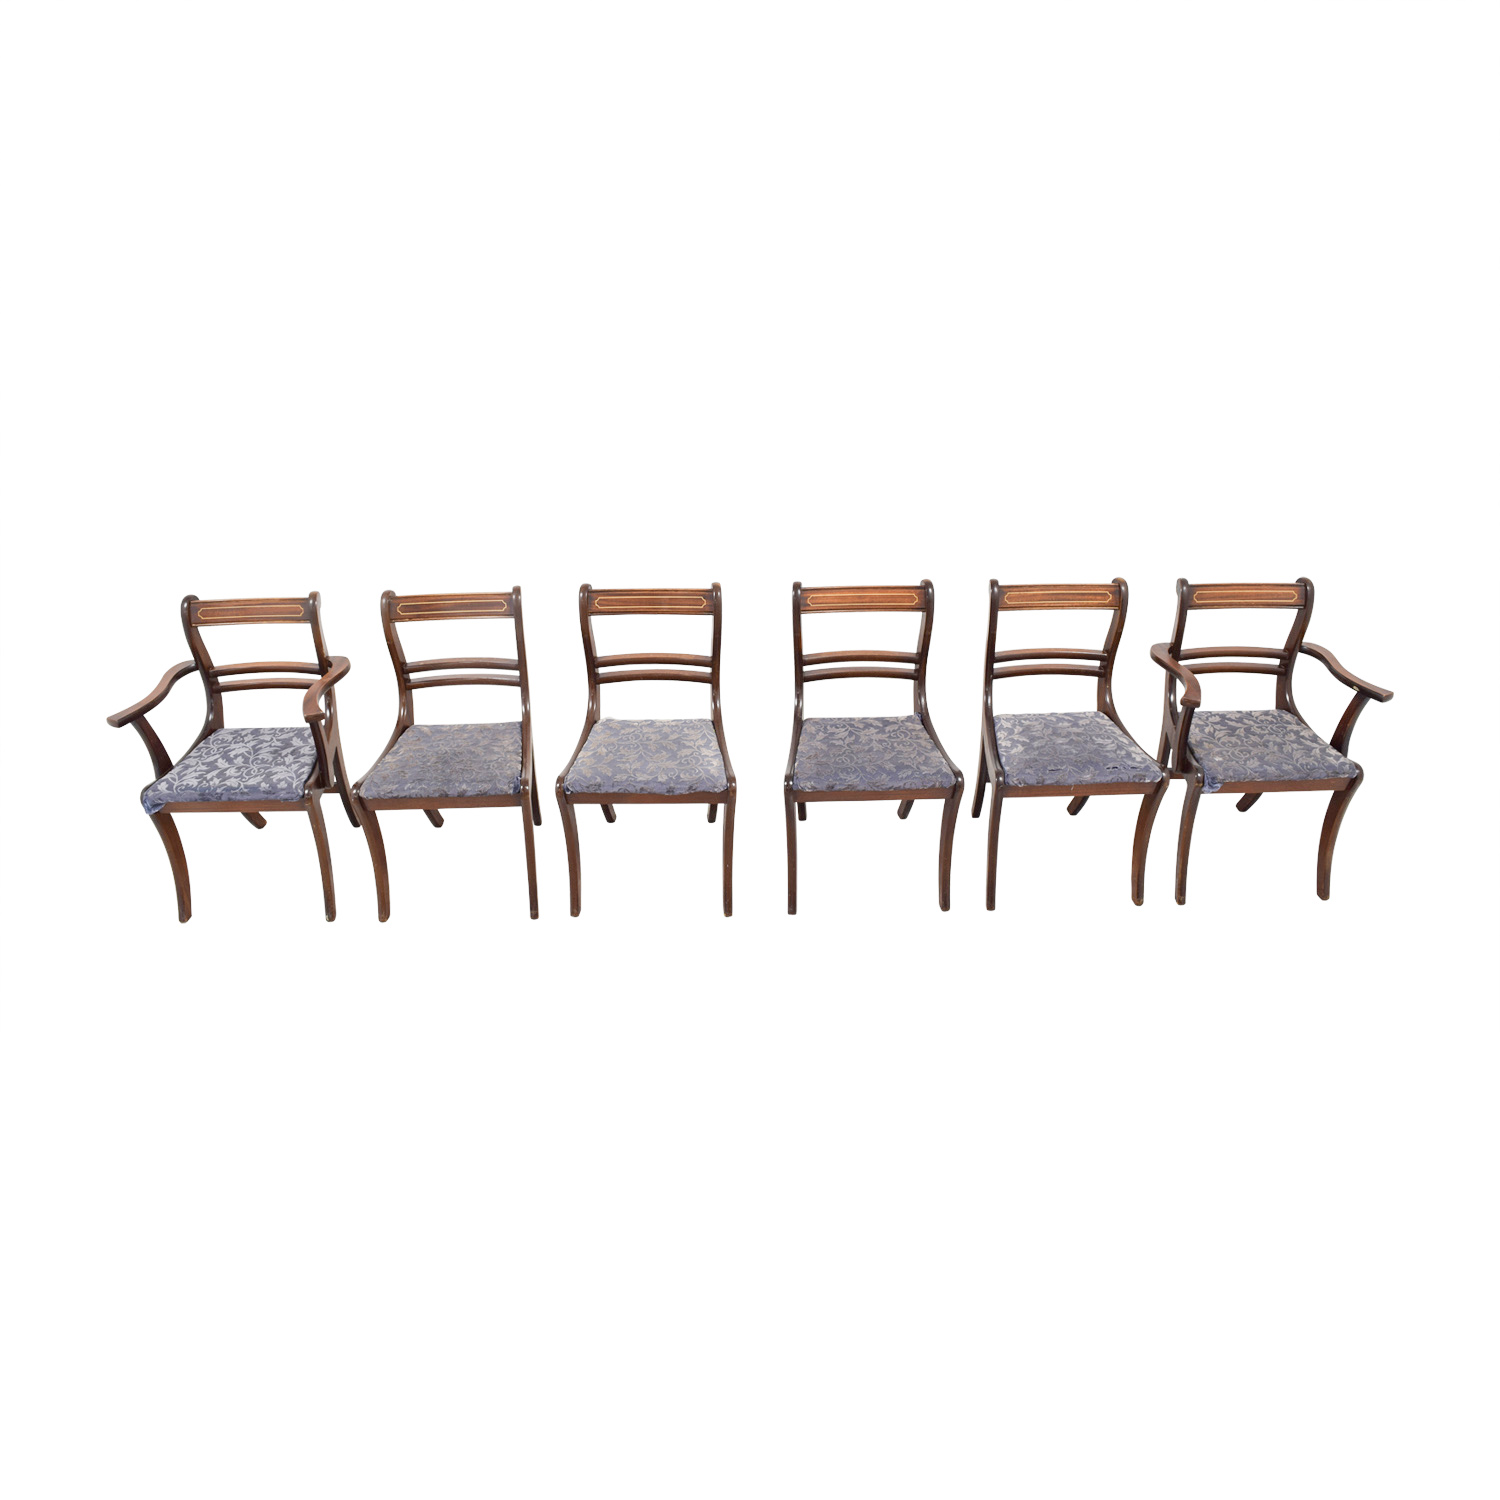 Wood Dining Chairs with Removable Blue Cushions used